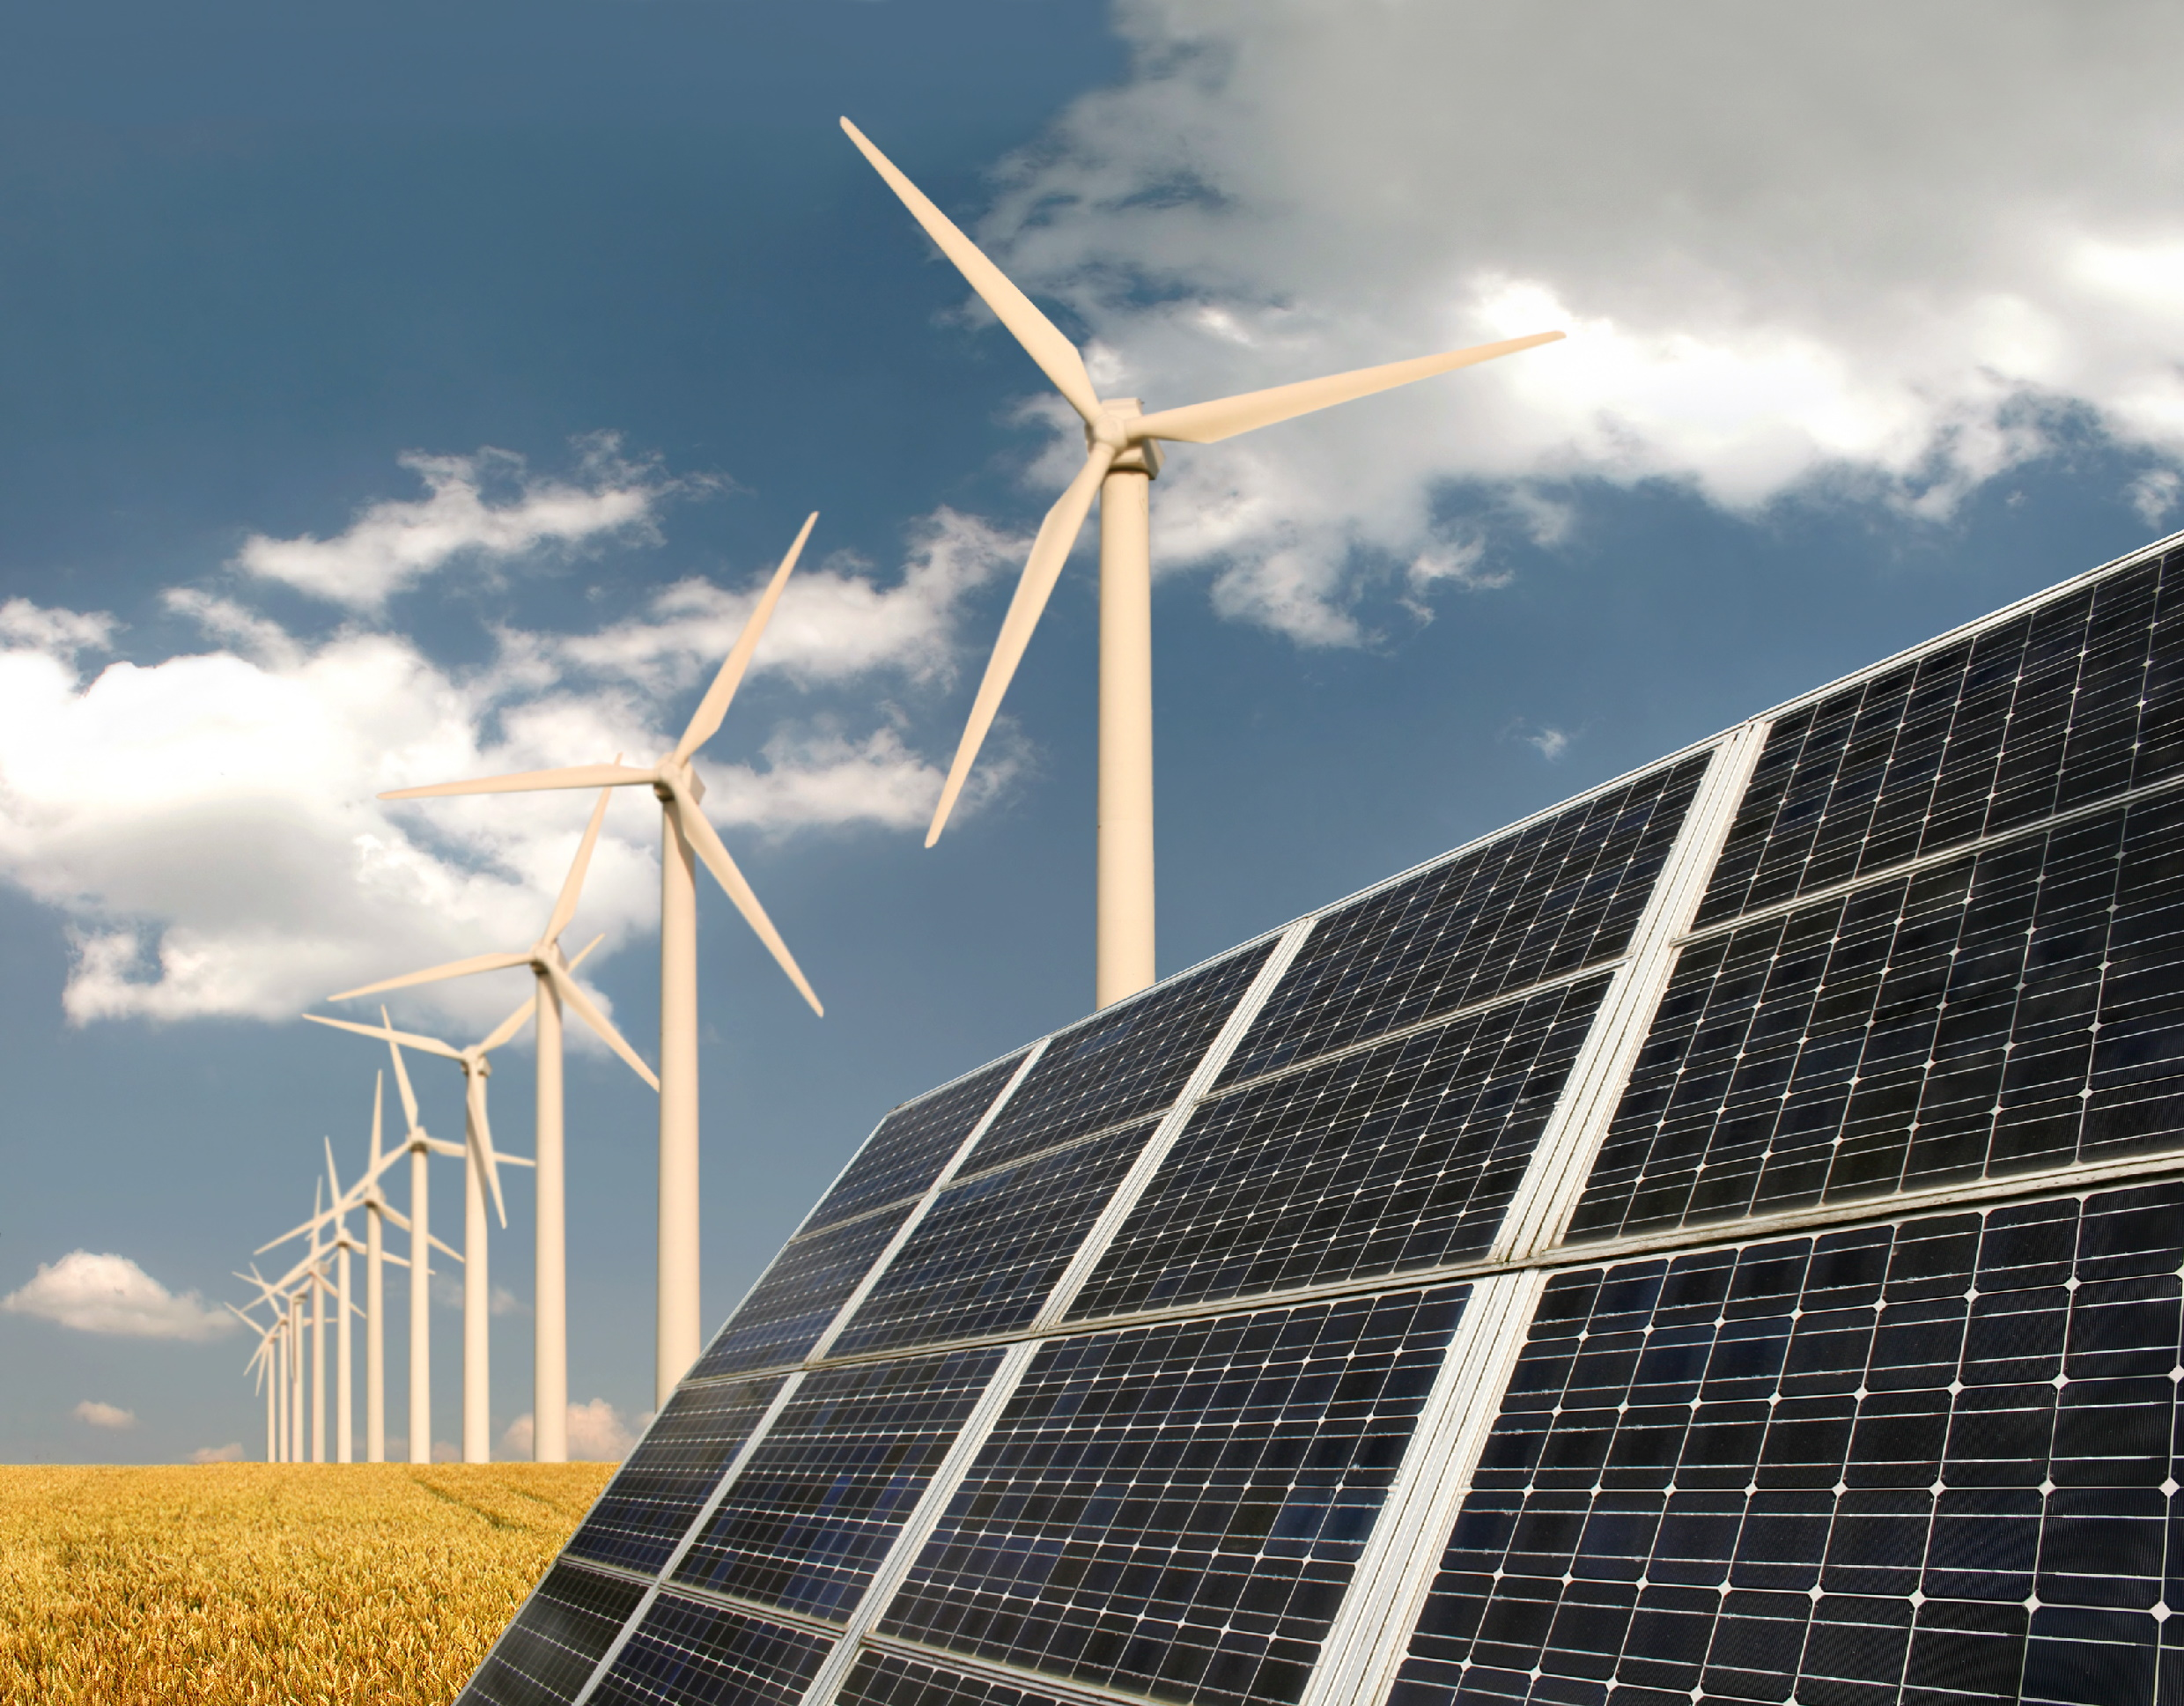 Latest Working Paper Focuses on Renewable Energy Sources and Energy ...